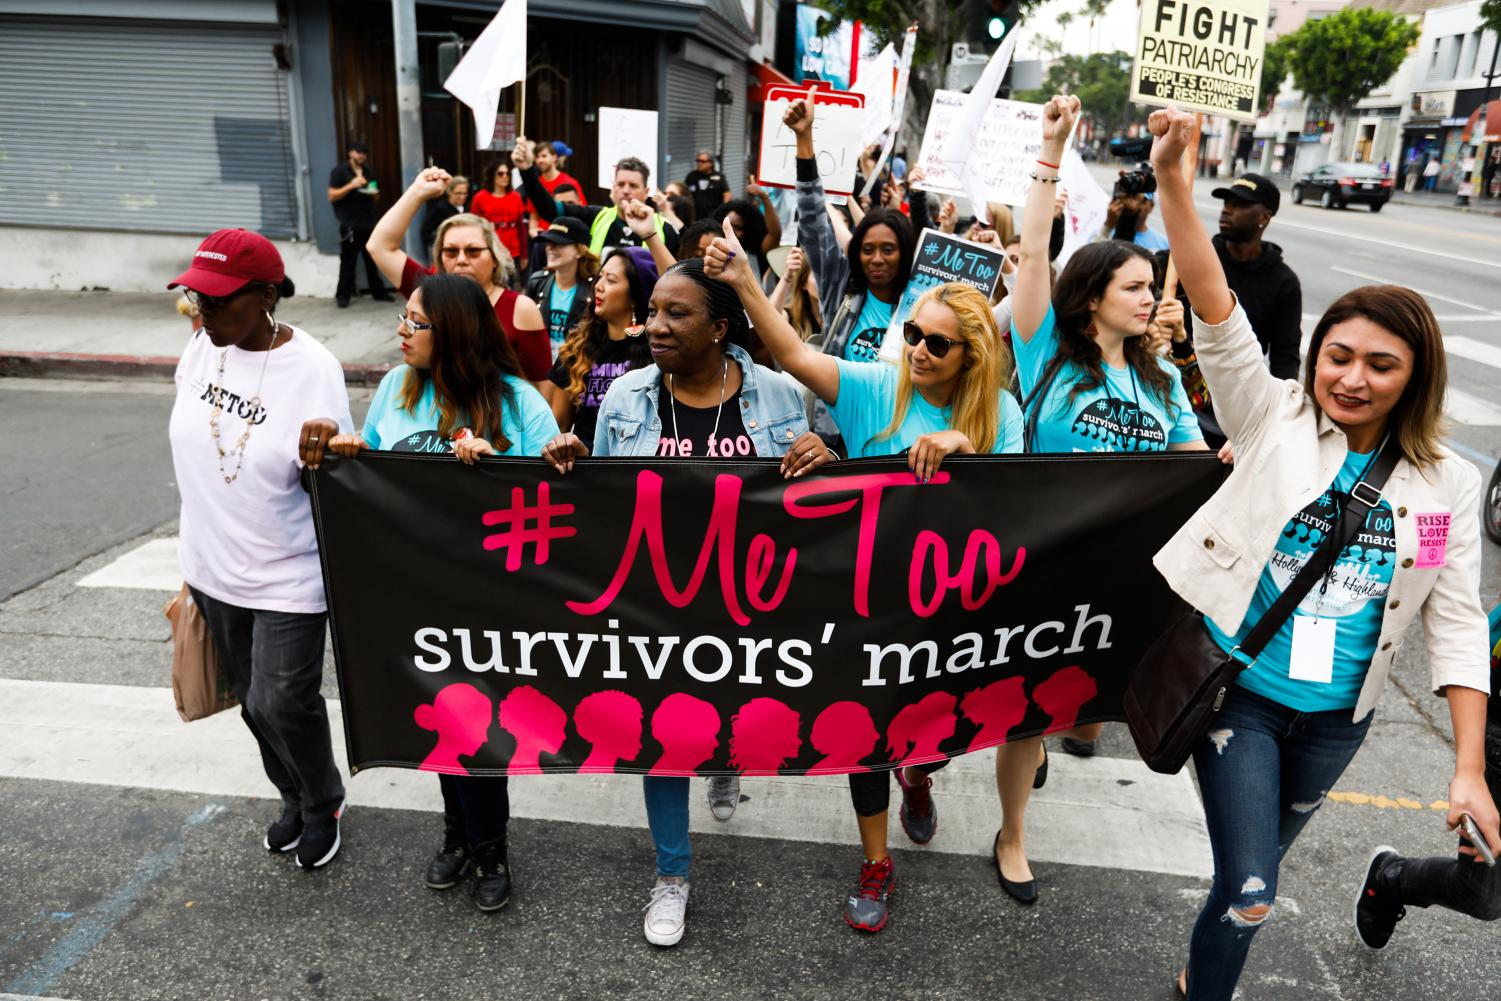 Women protest #MeToo movement. Photo Credit: MCT Campus.